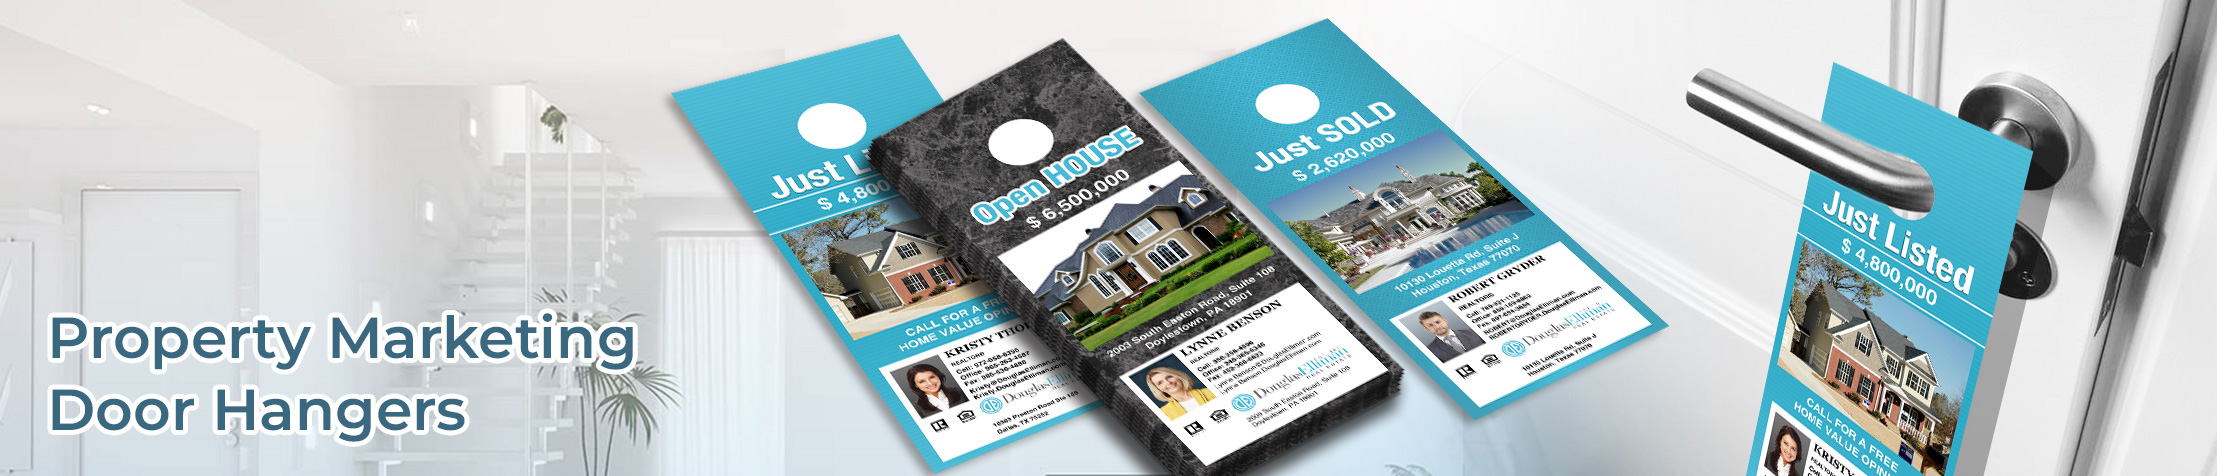 Douglas Elliman Real Estate Property Marketing Door Hangers - Douglas Elliman Real Estate Door Knockers for Realtors | BestPrintBuy.com